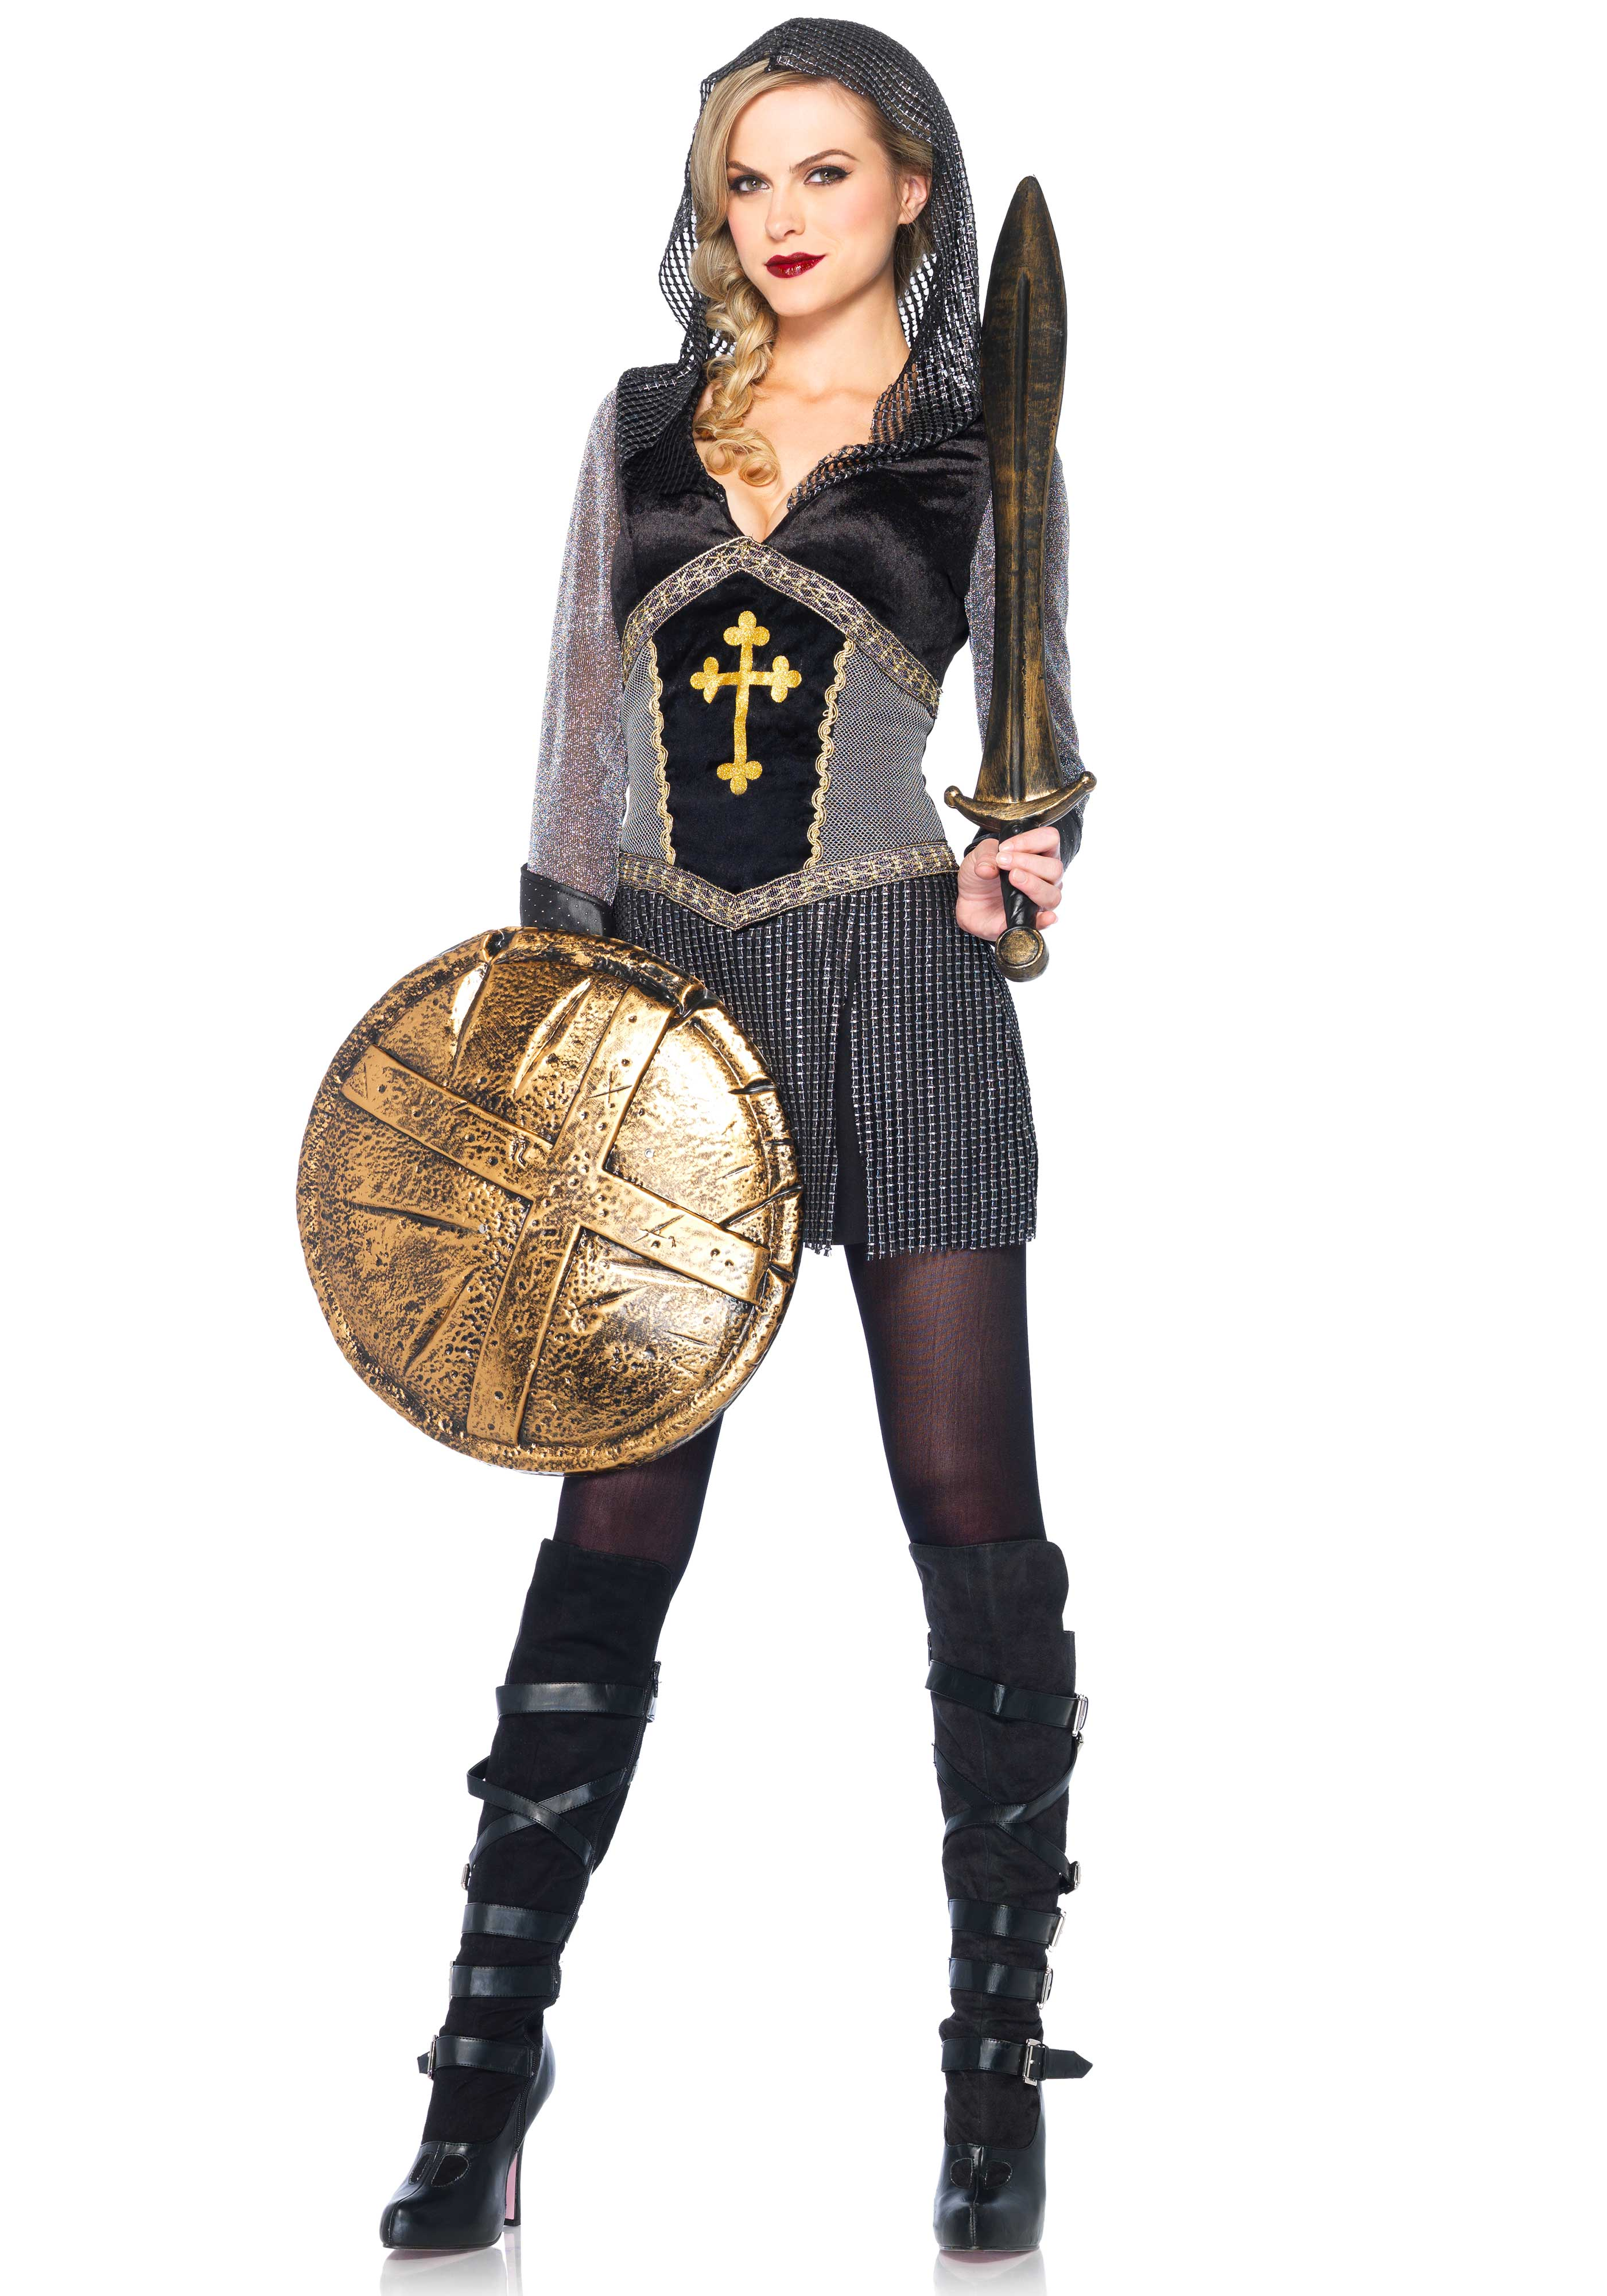 Look tough in this 'Joan of Arc' costume. It's a faux chainmail hooded dress with cross detail and studded faux leather cuffs. The sword, shields and tights are not included. When in doubt we recommend to go one size up.